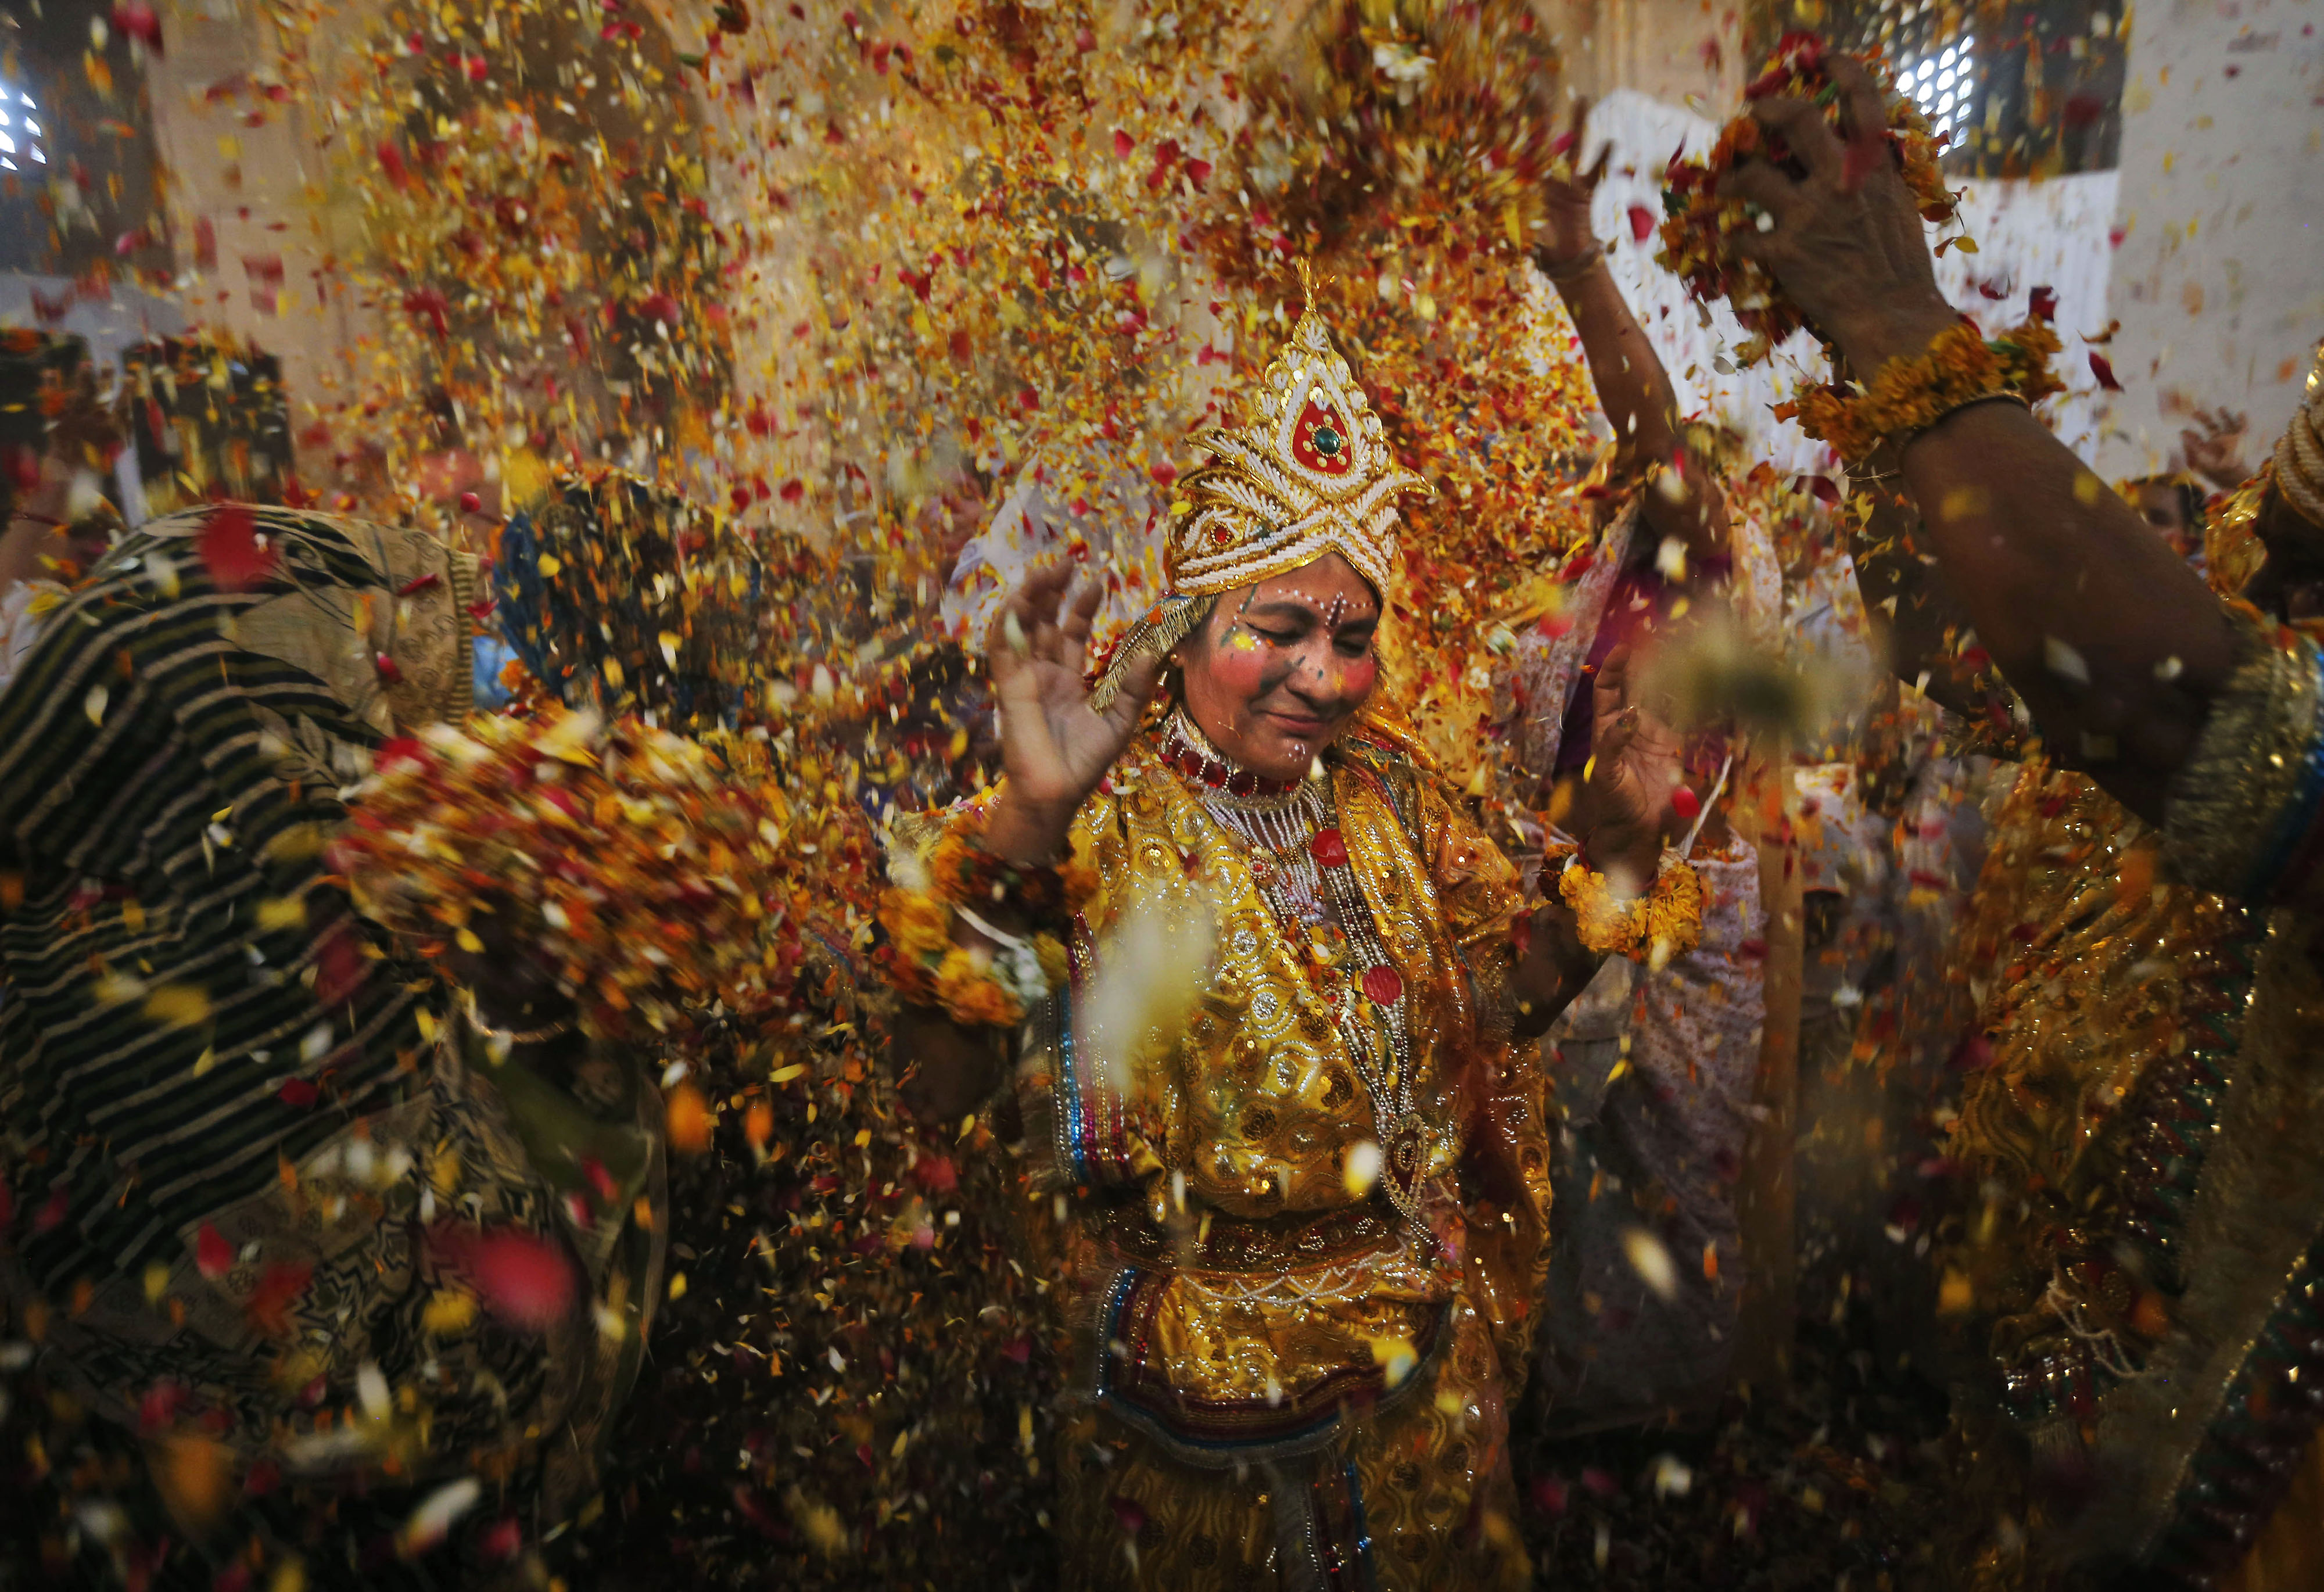 An Indian widow dressed as a consort of Lord Krishna walks as others throw flowers during Holi celebrations in Vrindavan, on March 24, 2013.